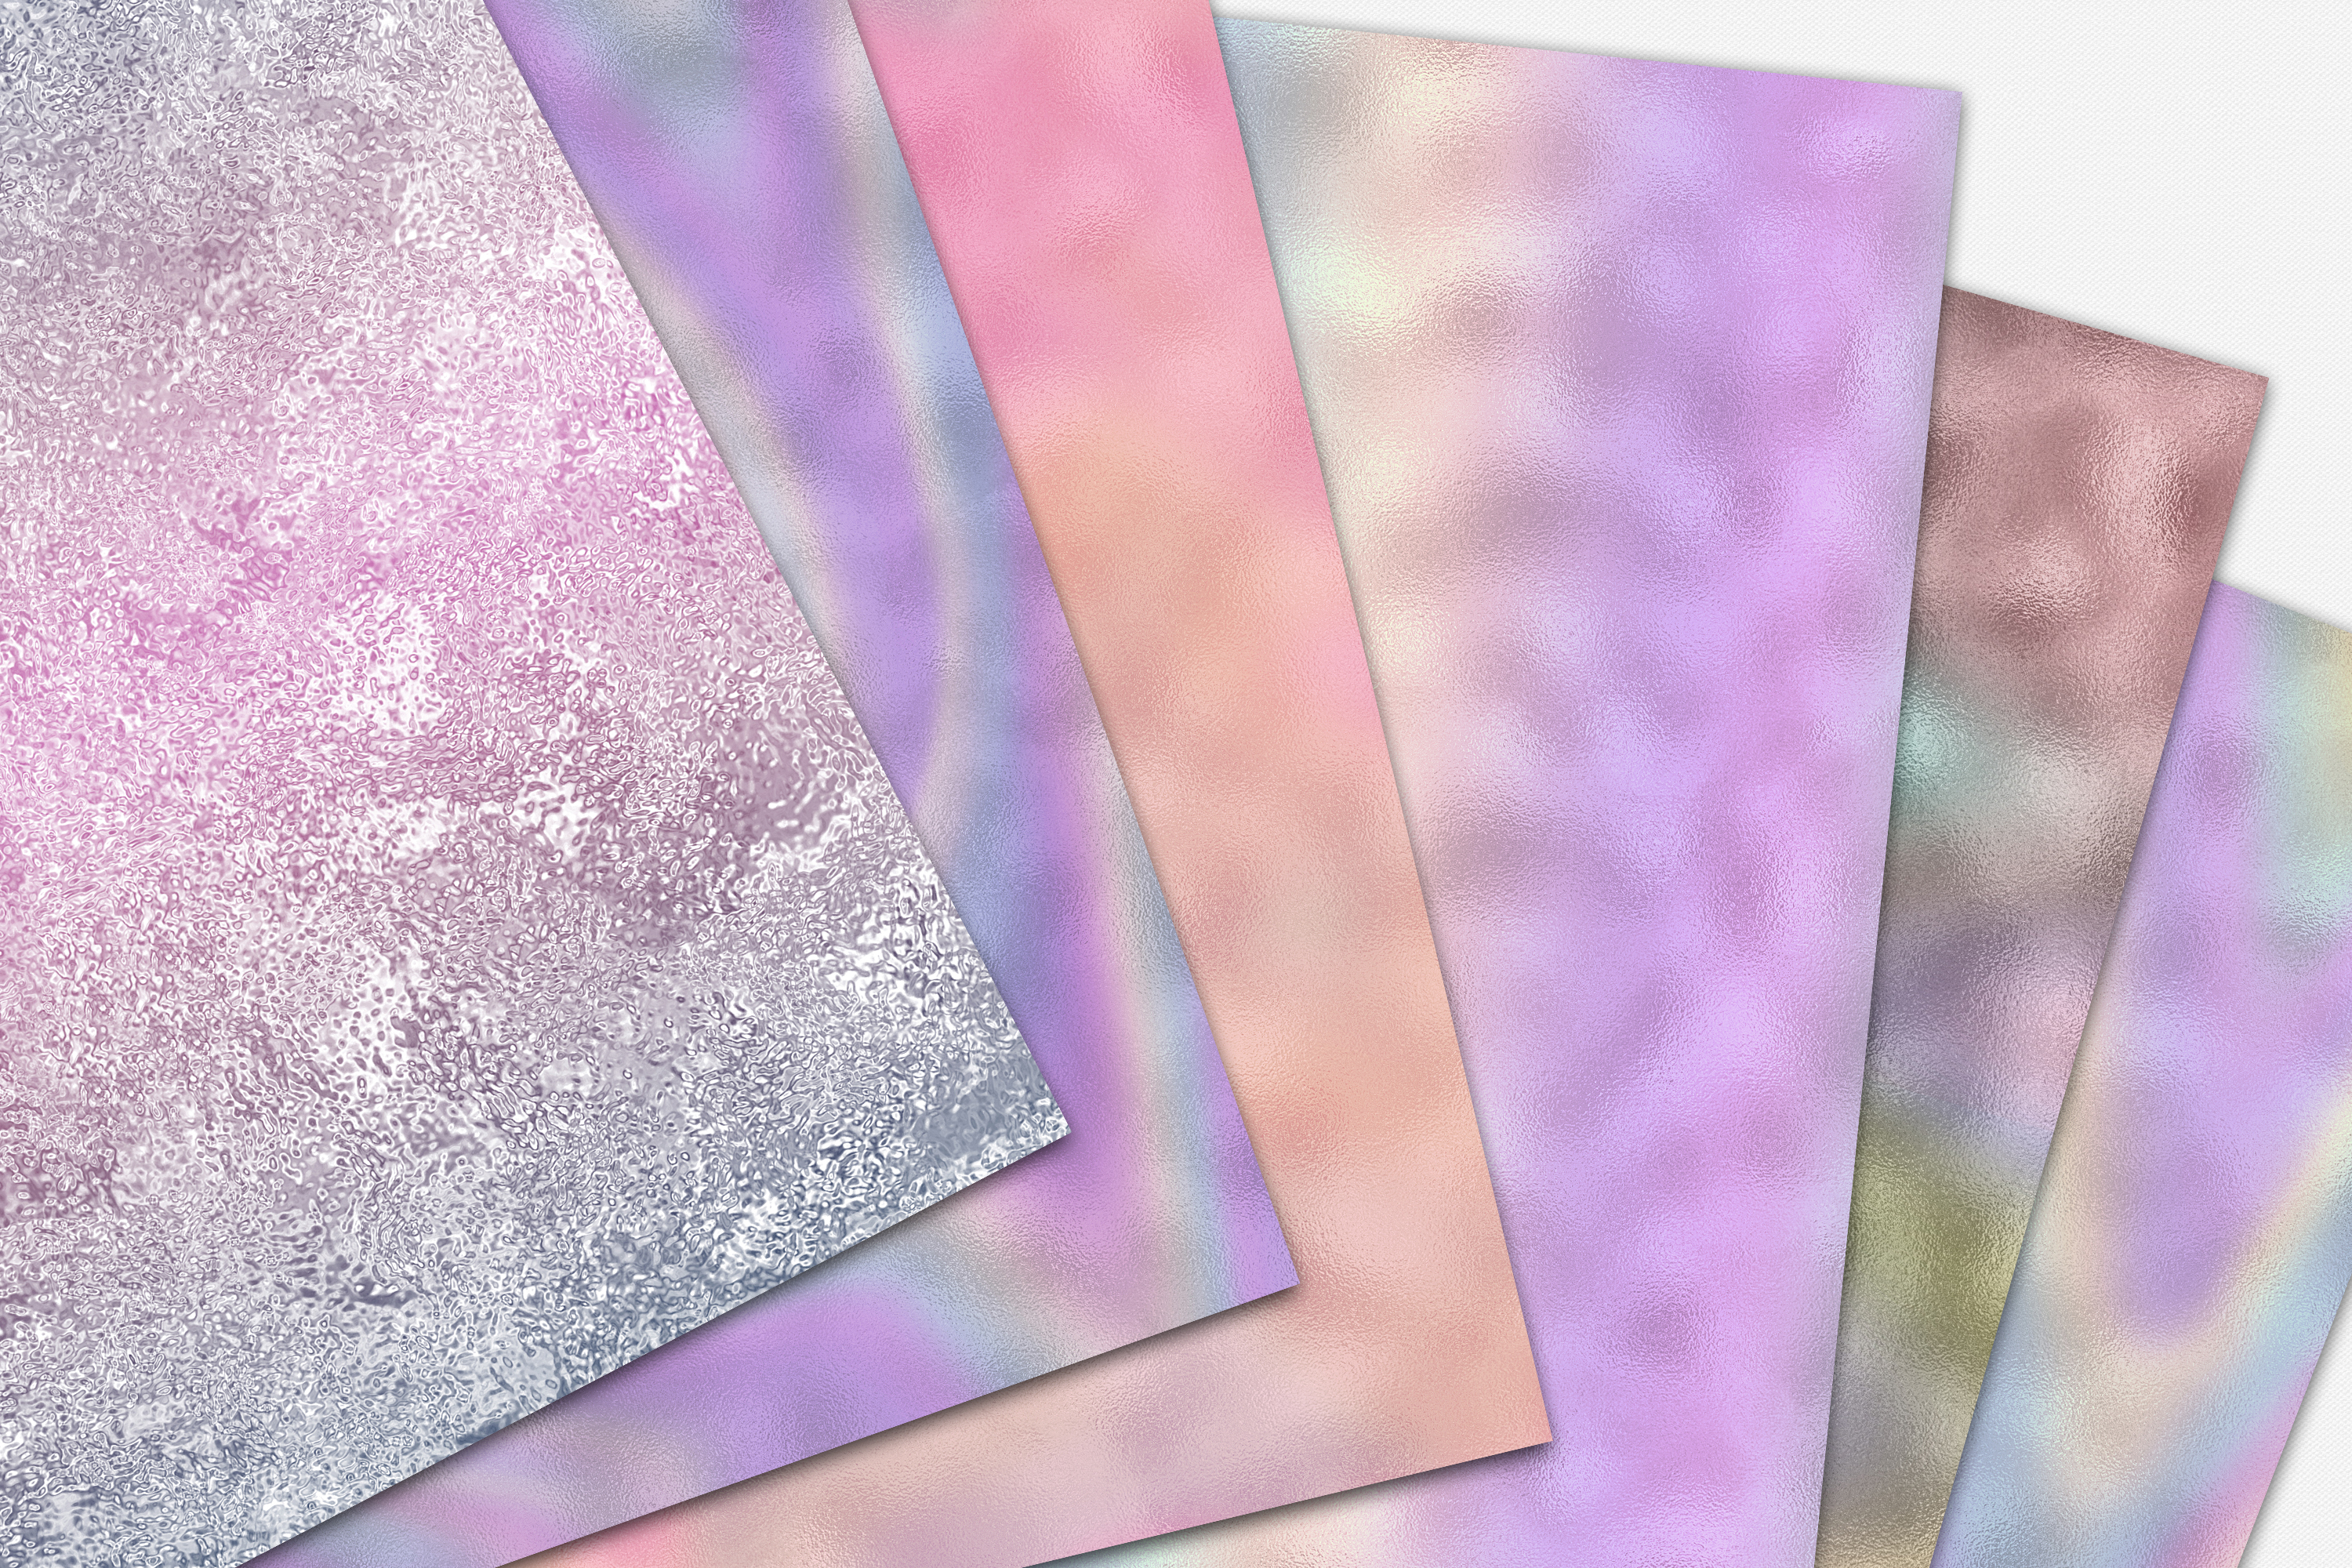 10 Iridescent Textures - Seamless Holographic Foil example image 5